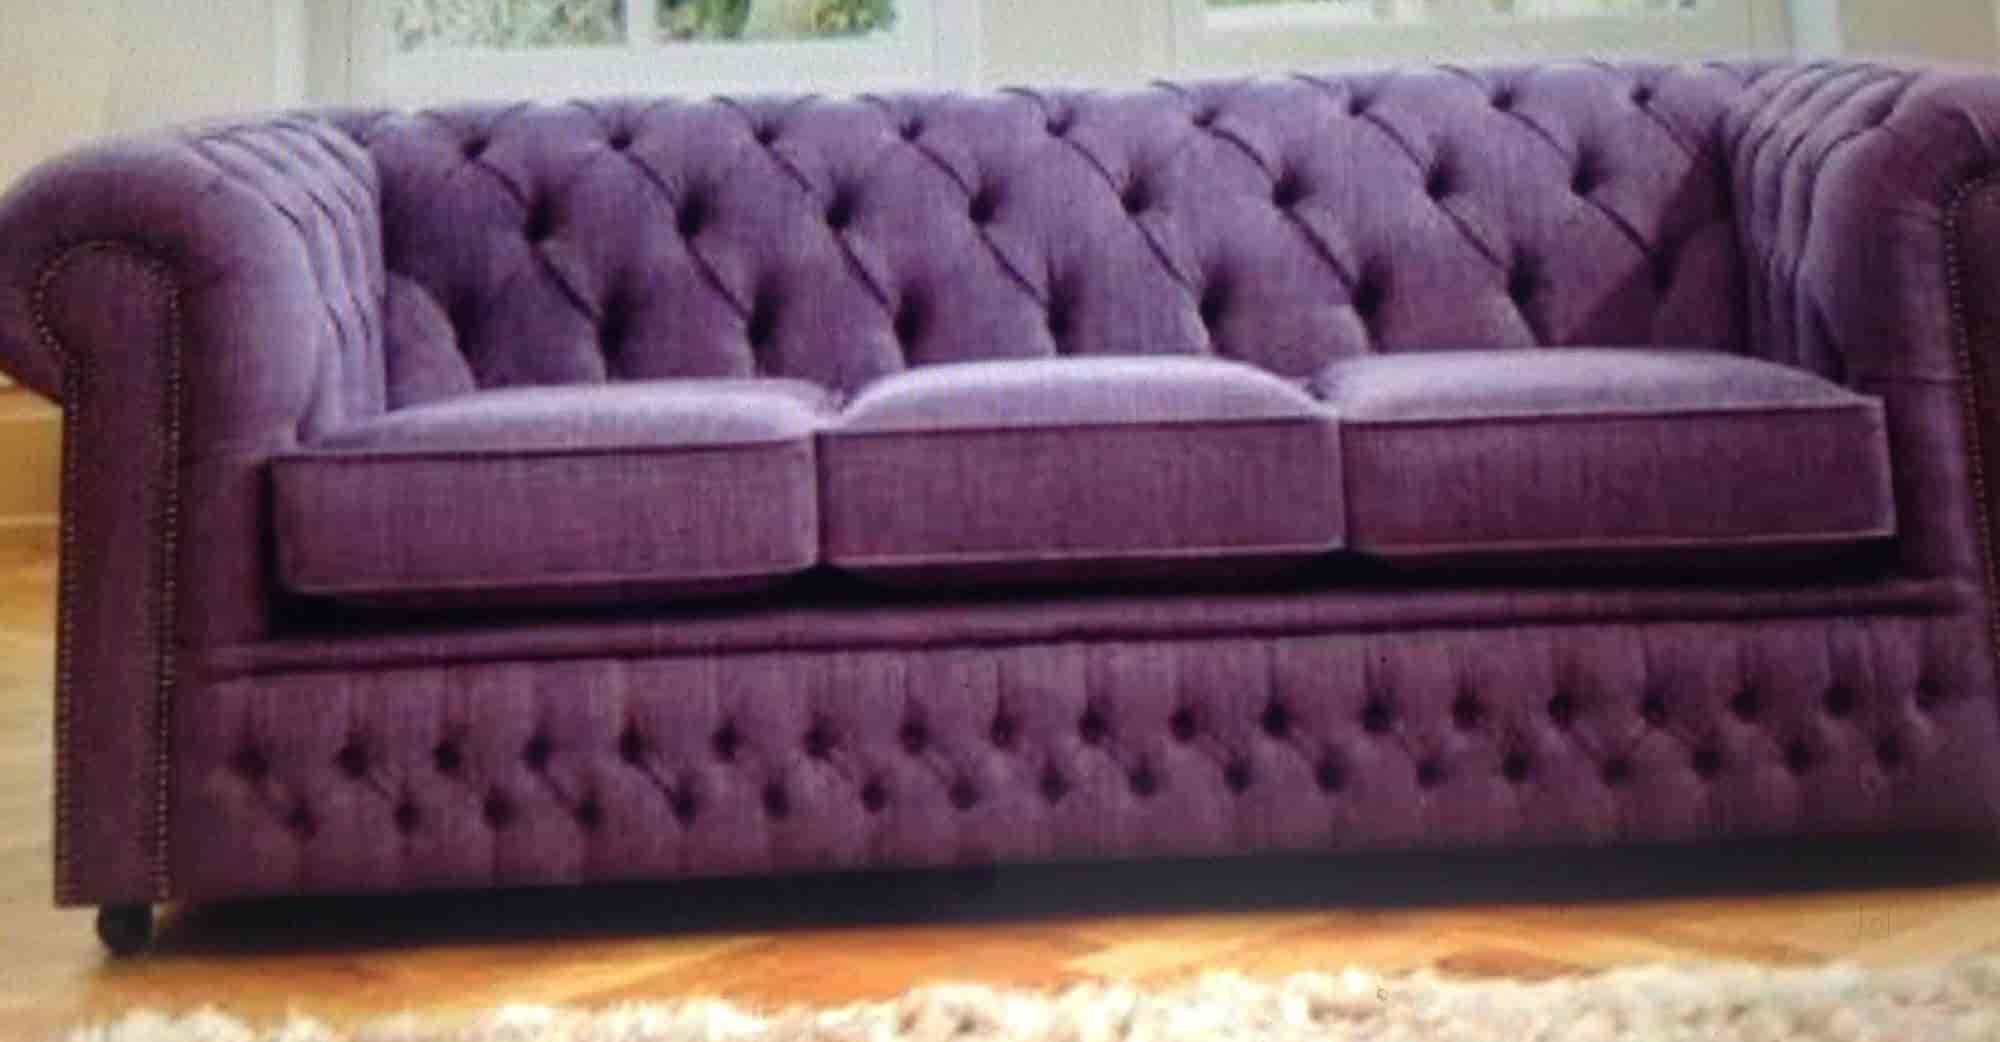 sofa dry cleaner in delhi oversized leather recliner cleaners gurgaon brokeasshome